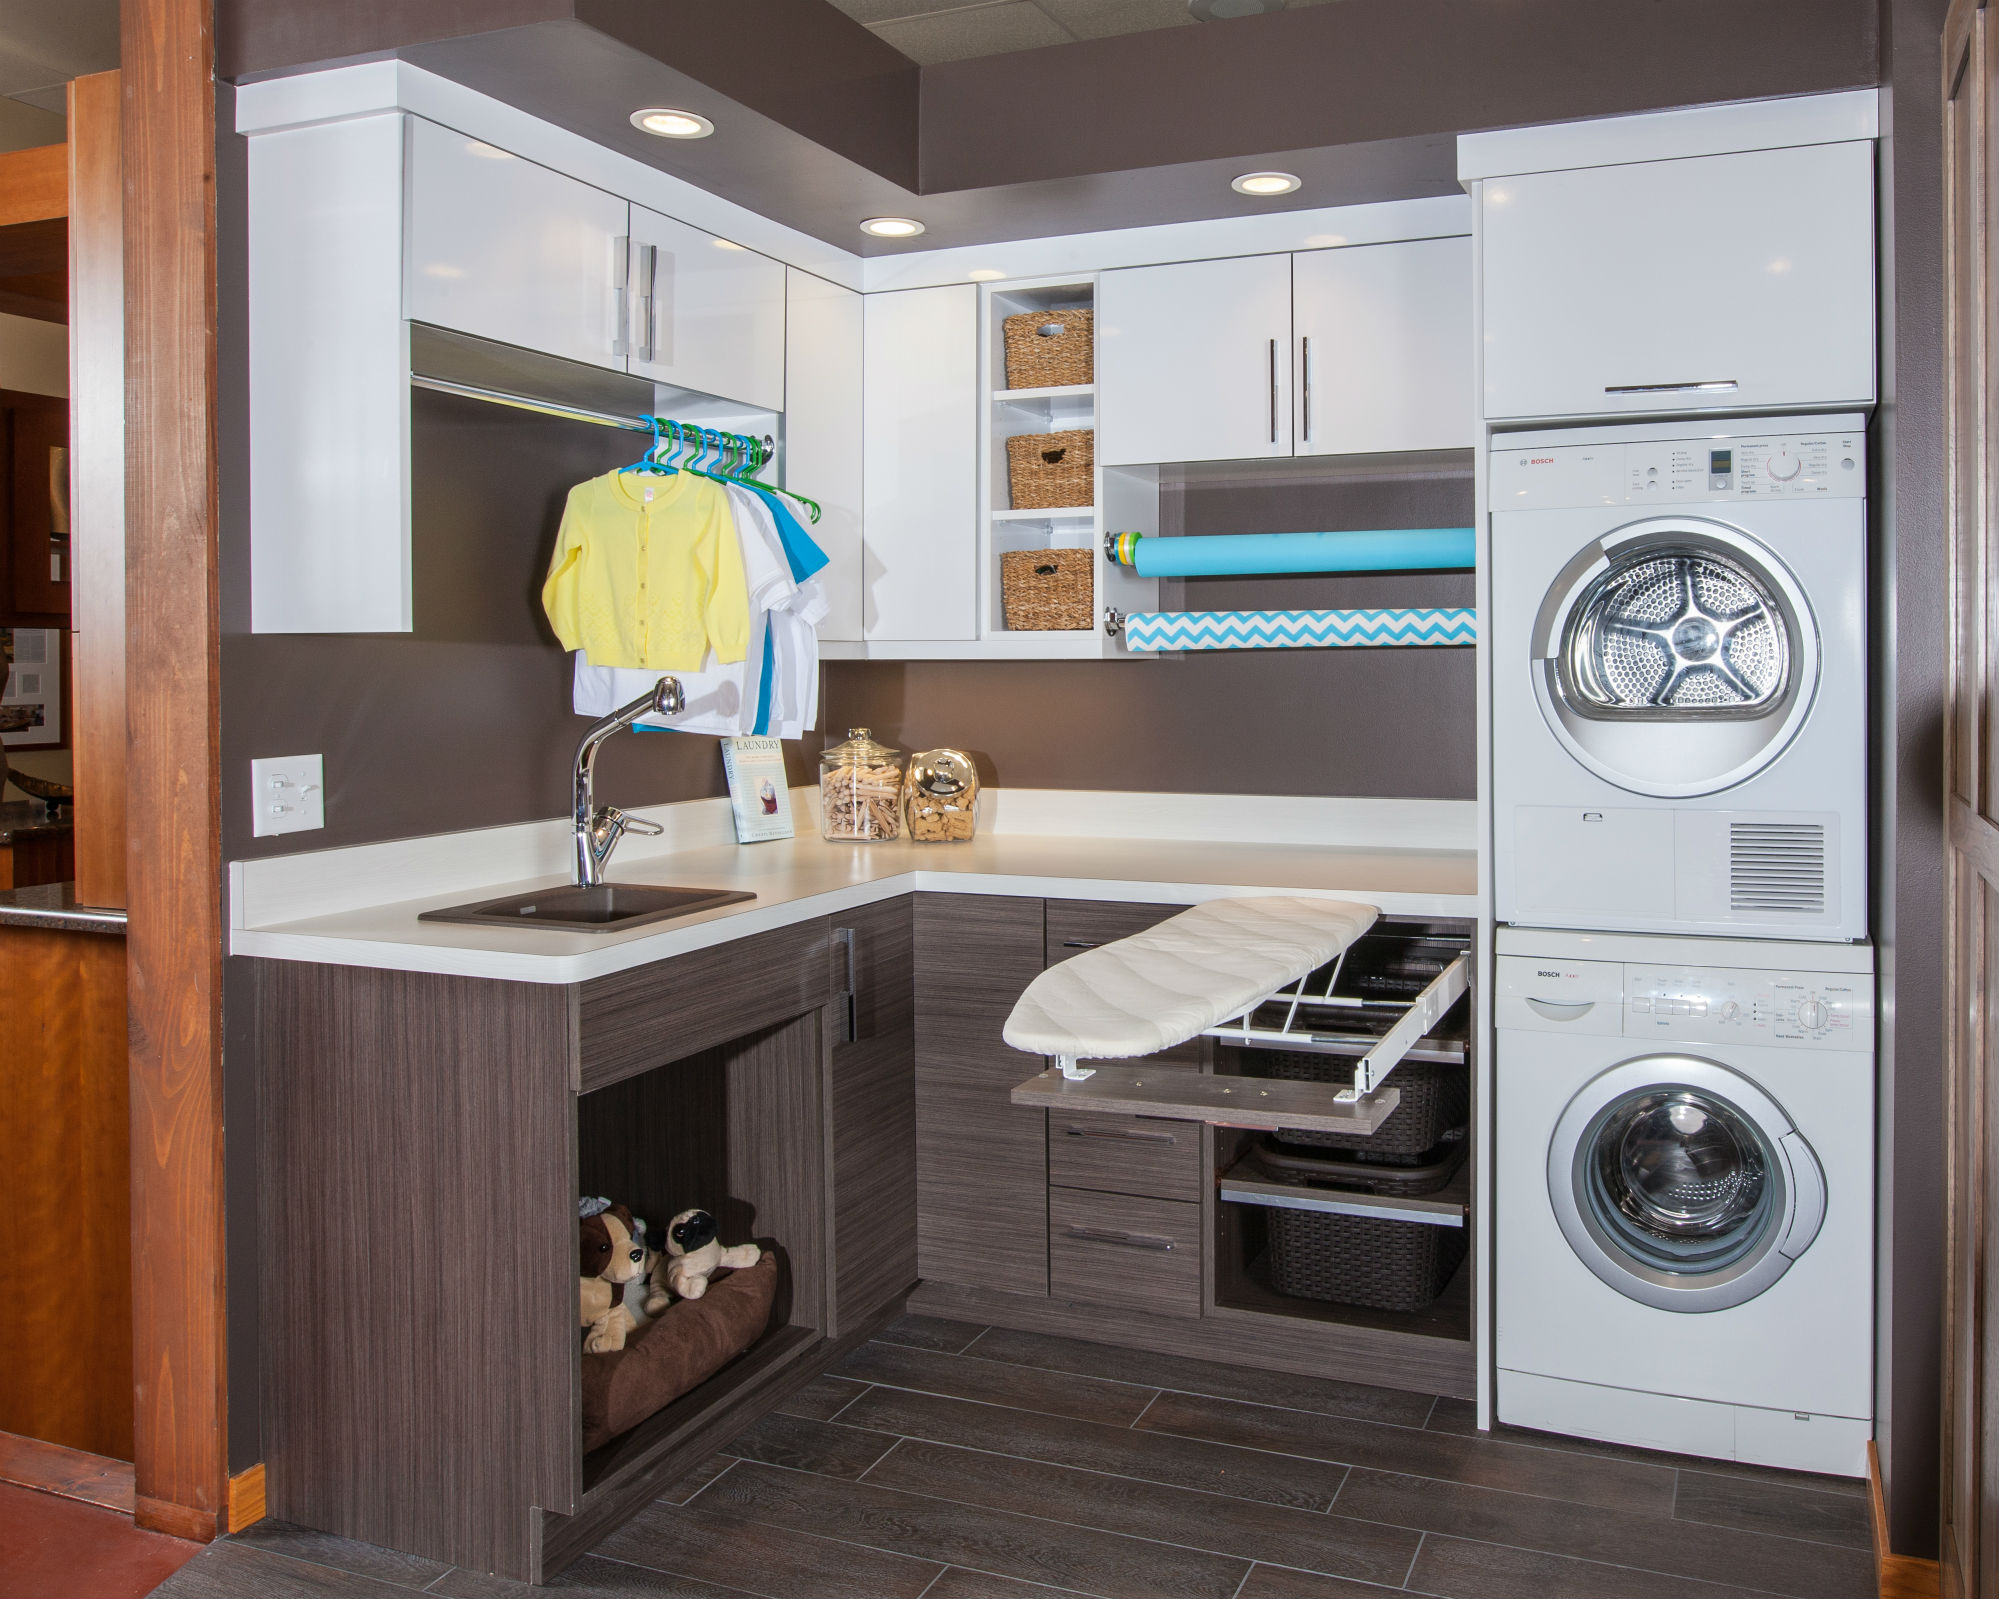 Crystal kitchen bath laundry rooms